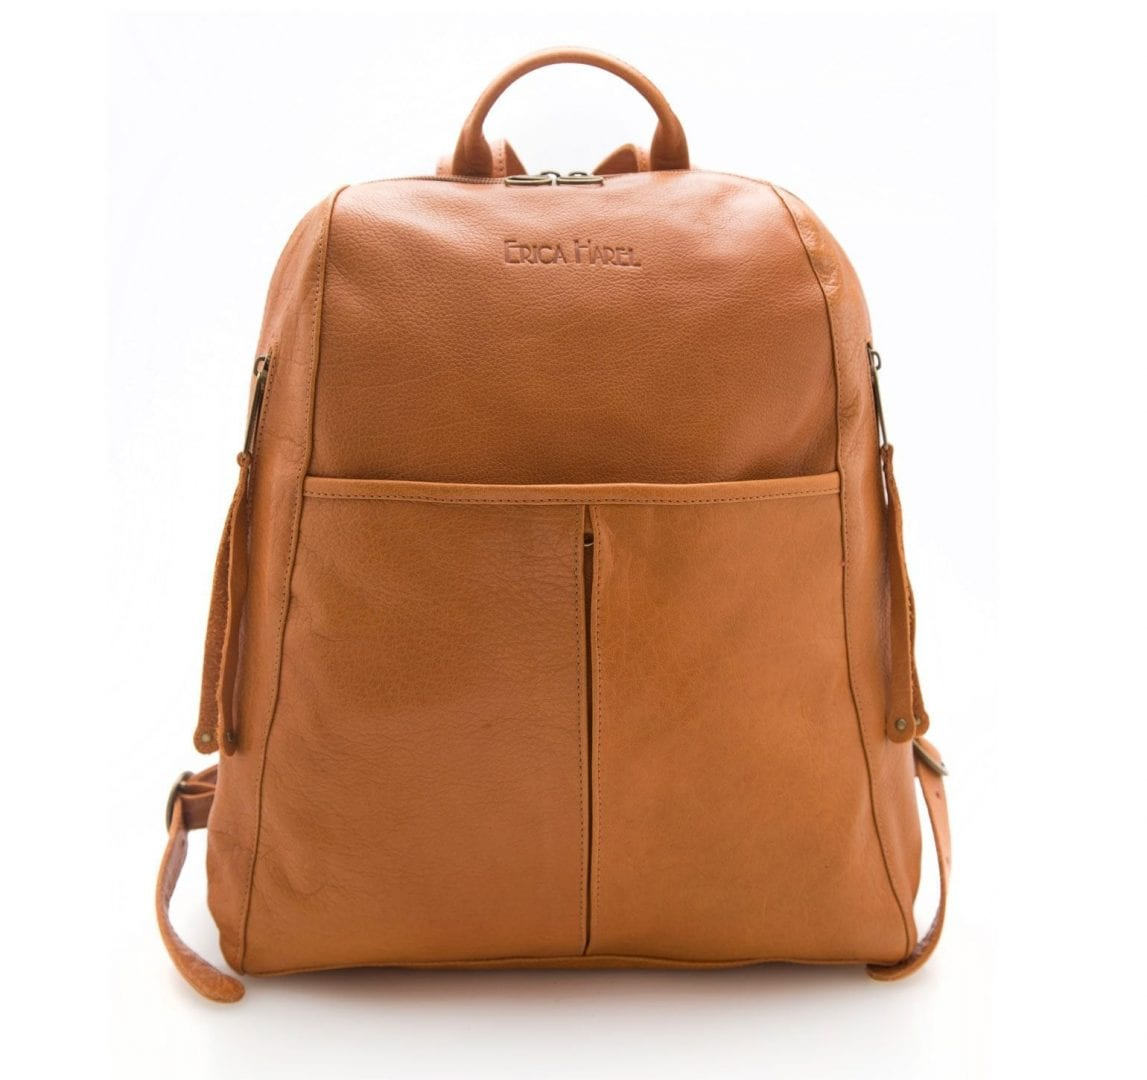 Mens Camel Leather Backpack | Calfskin Leather Backpack